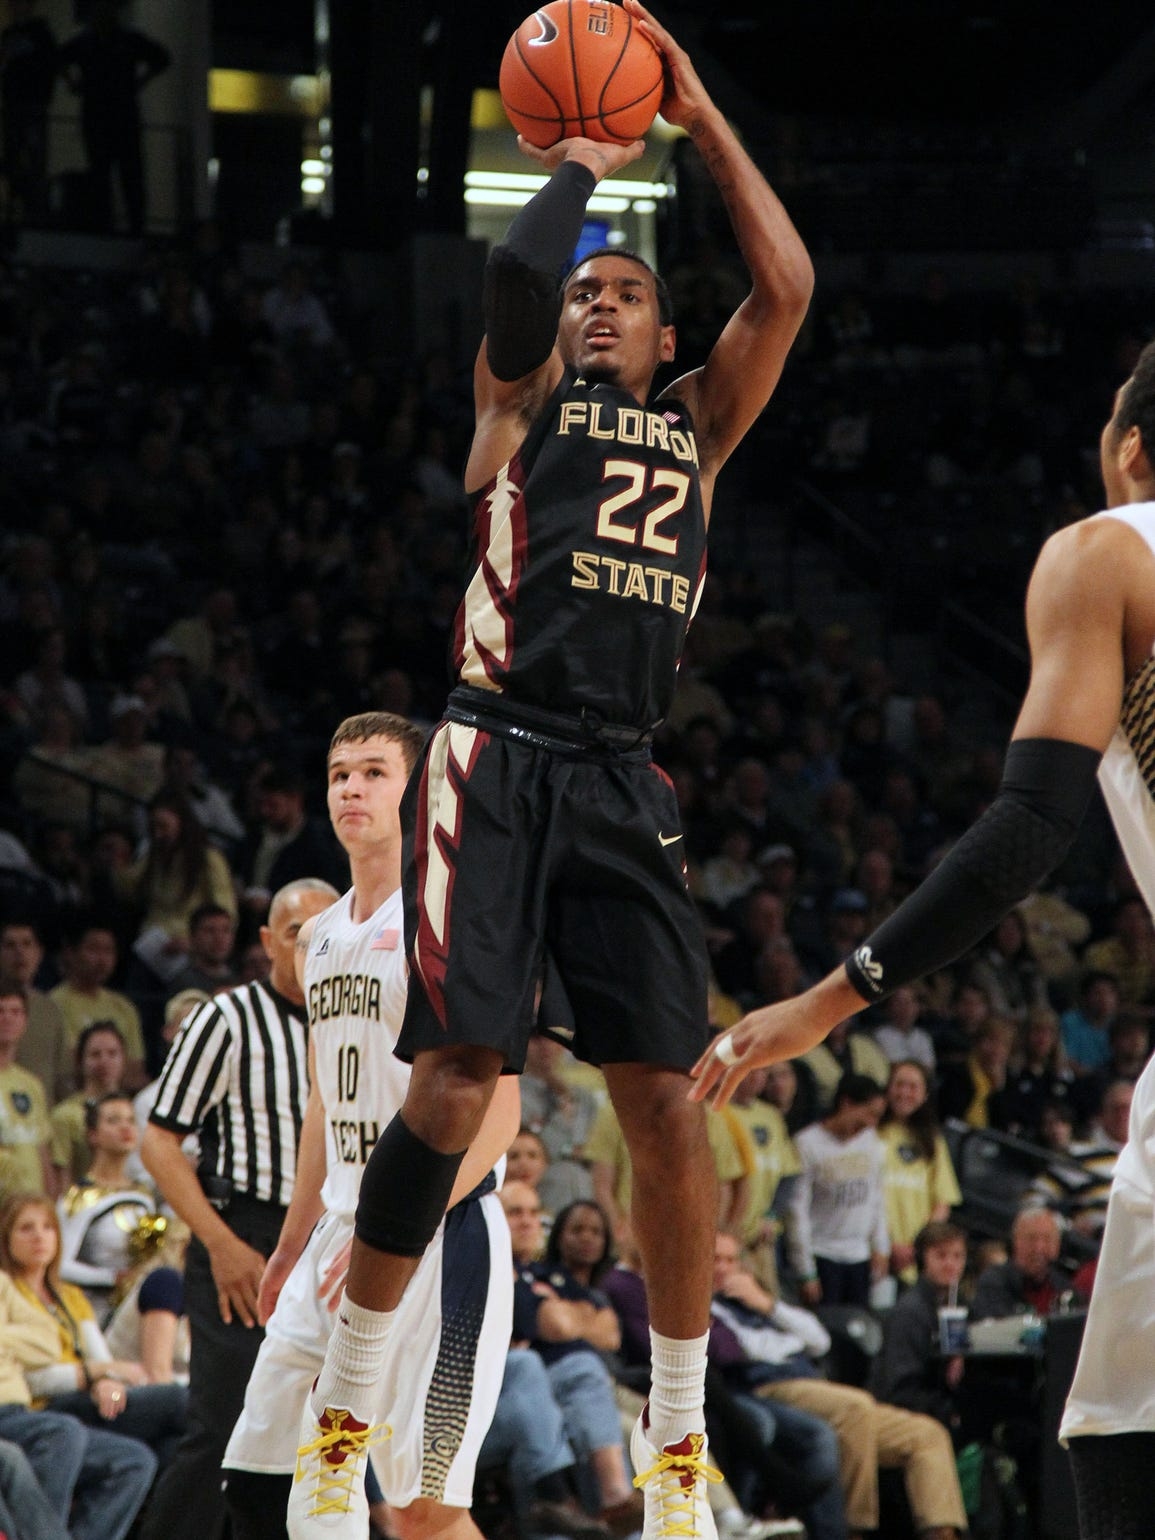 Xavier Rathan-Mayes shoots against Georgia Tech in